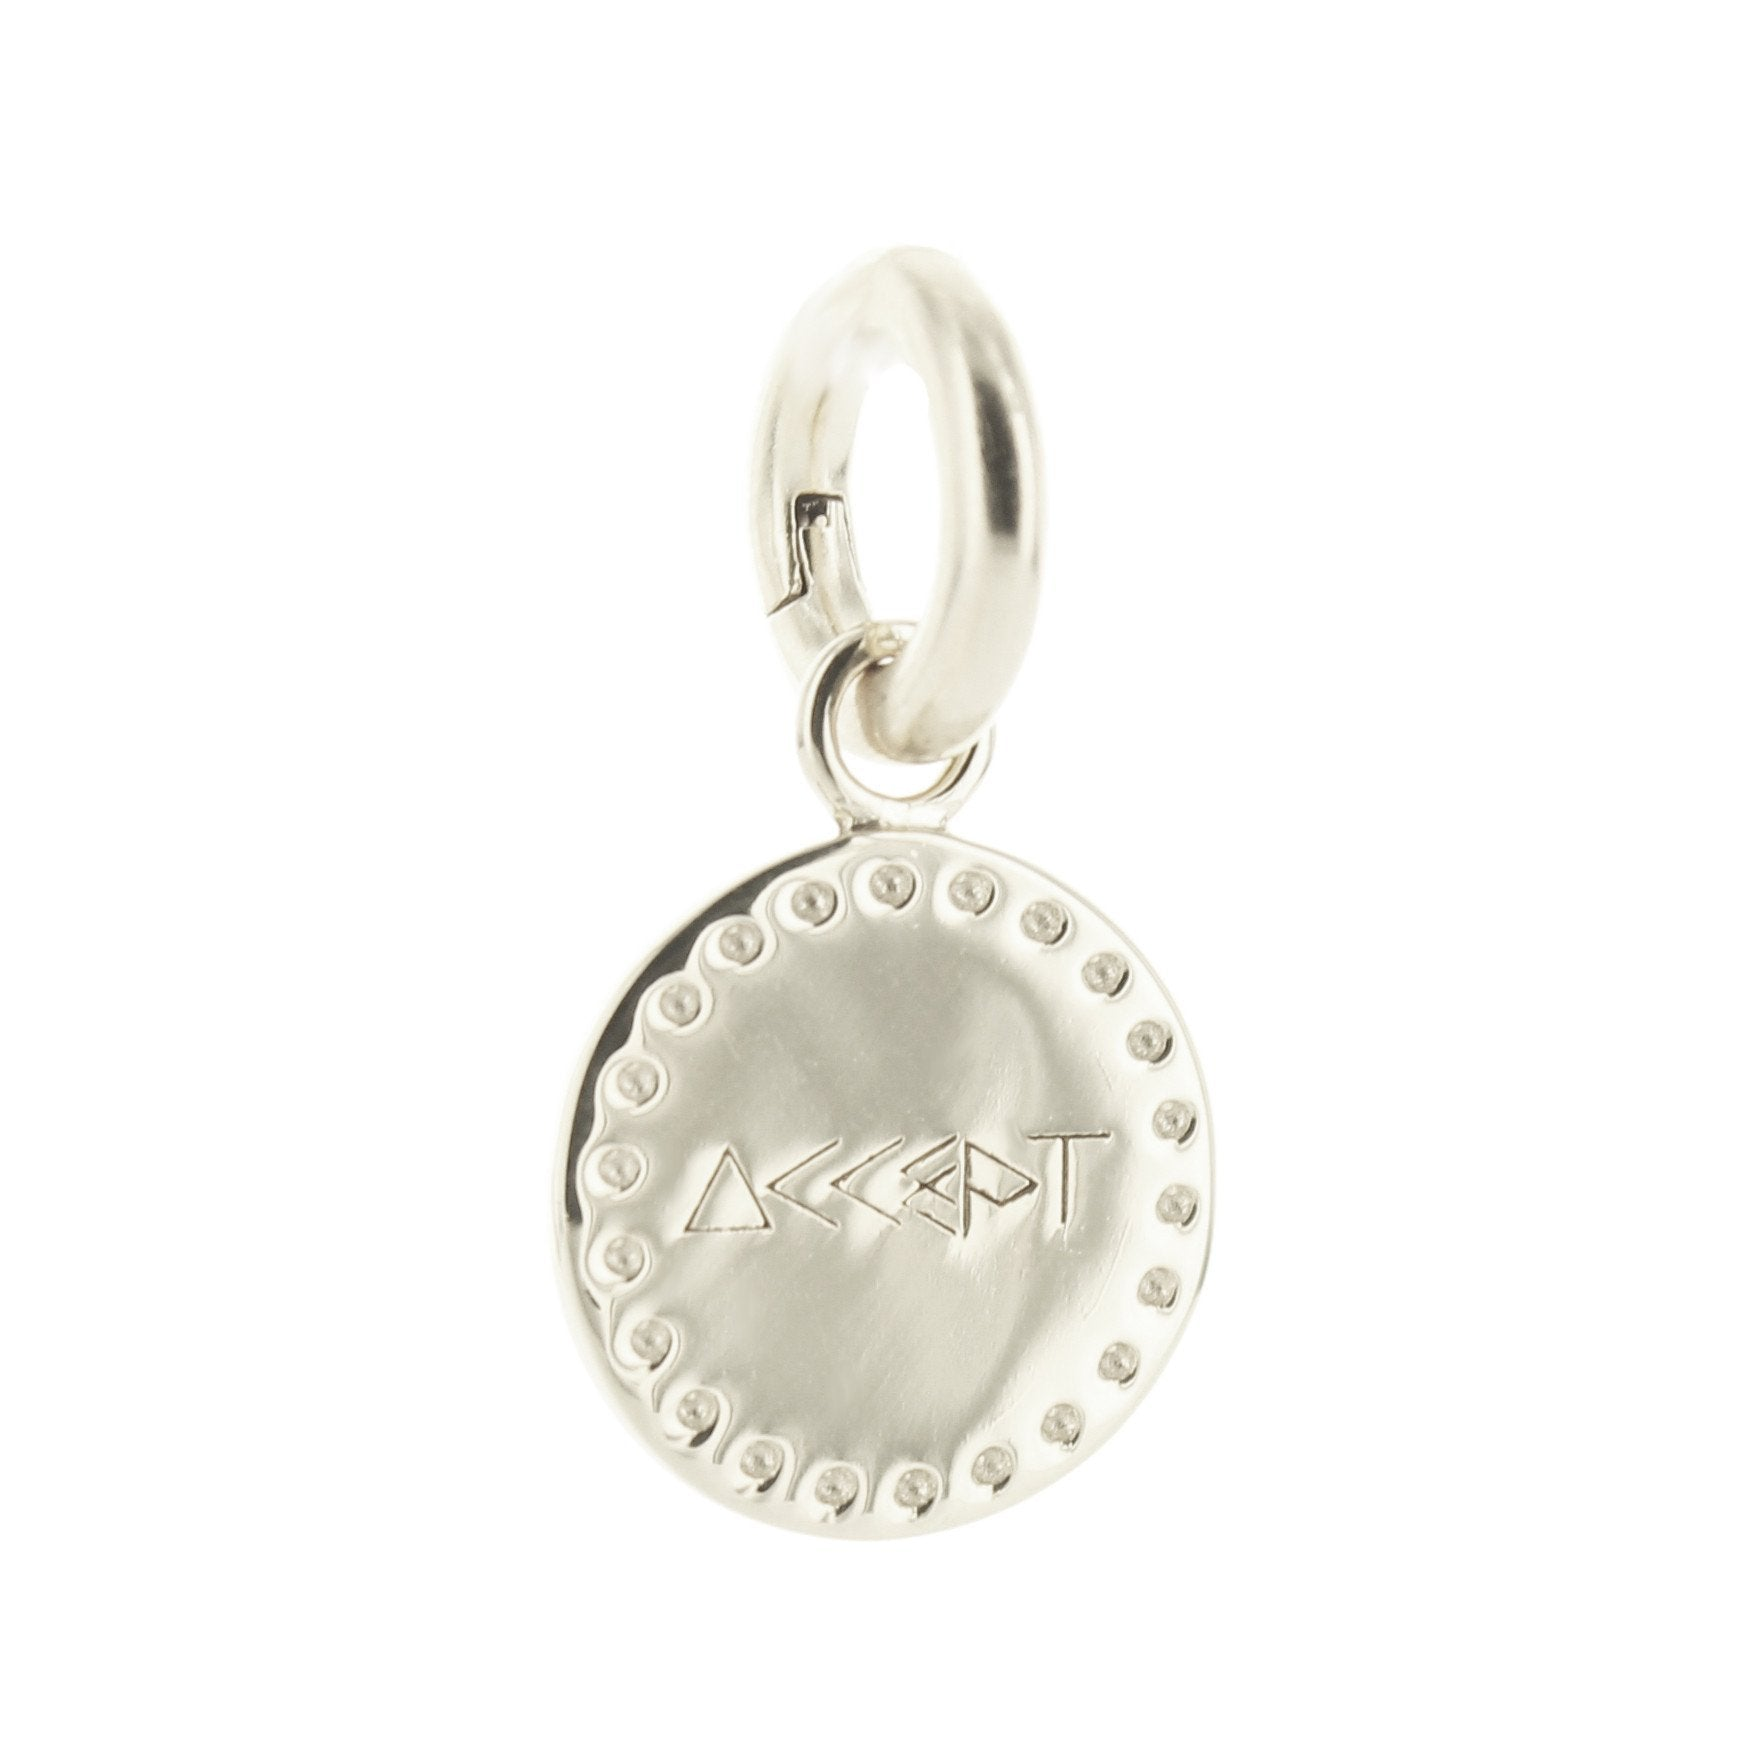 ACCEPT FLOATING CHARM PENDANT ALL METAL SILVER - SO PRETTY CARA COTTER